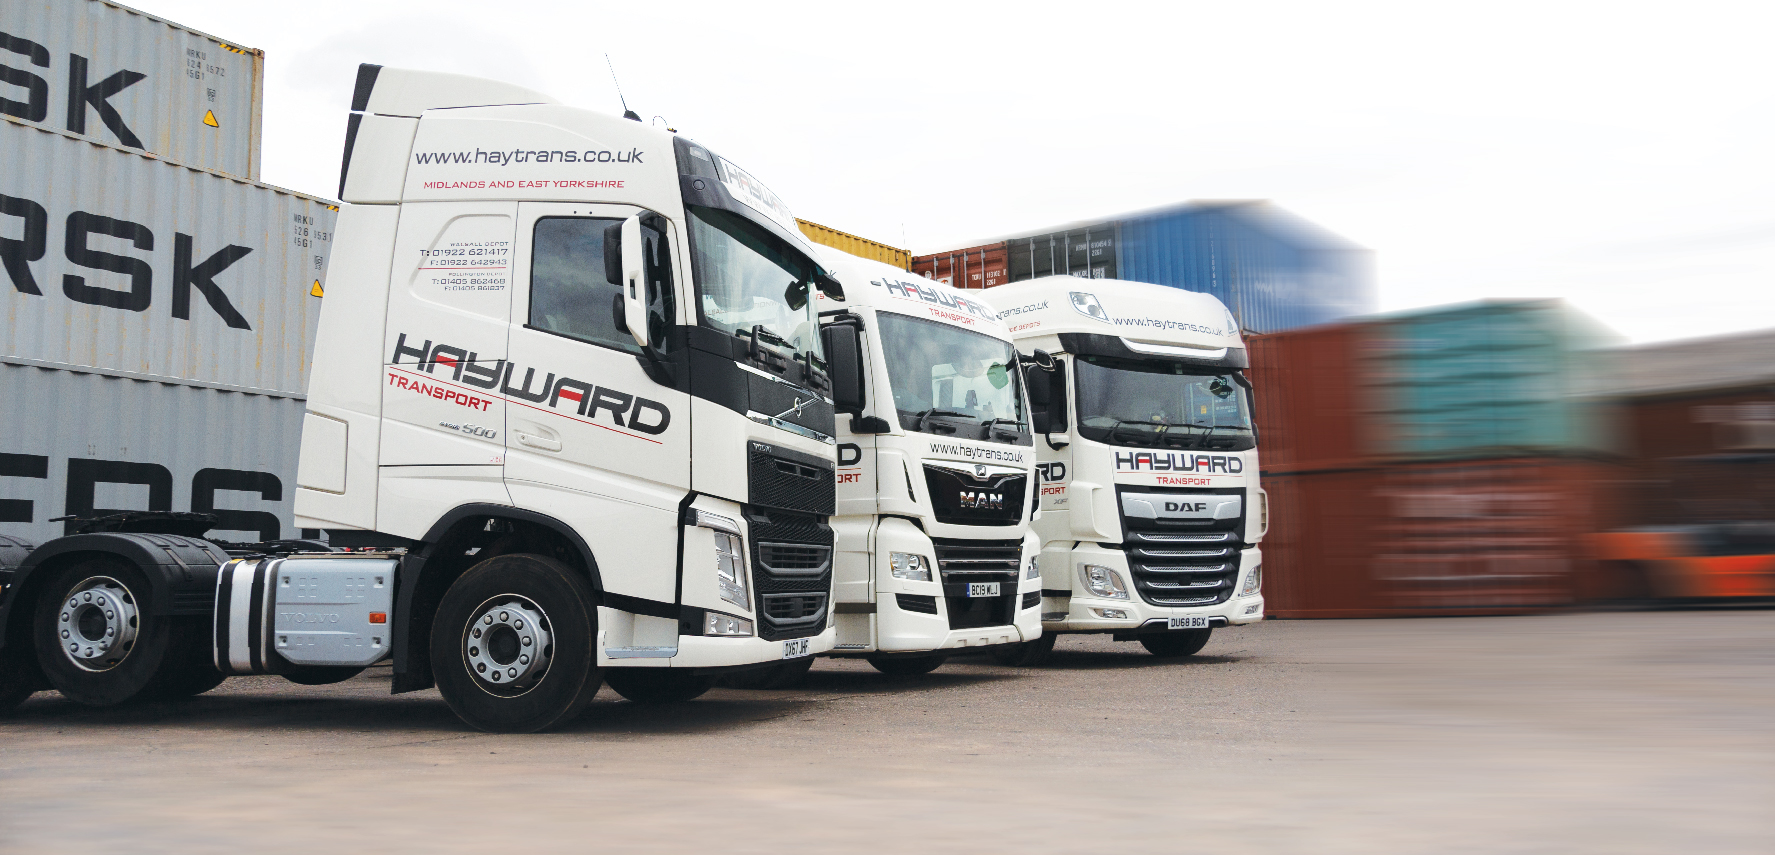 J Hayward & Sons of Walsall Ltd - flexible and trusted haulage solutions | low loaders and plant